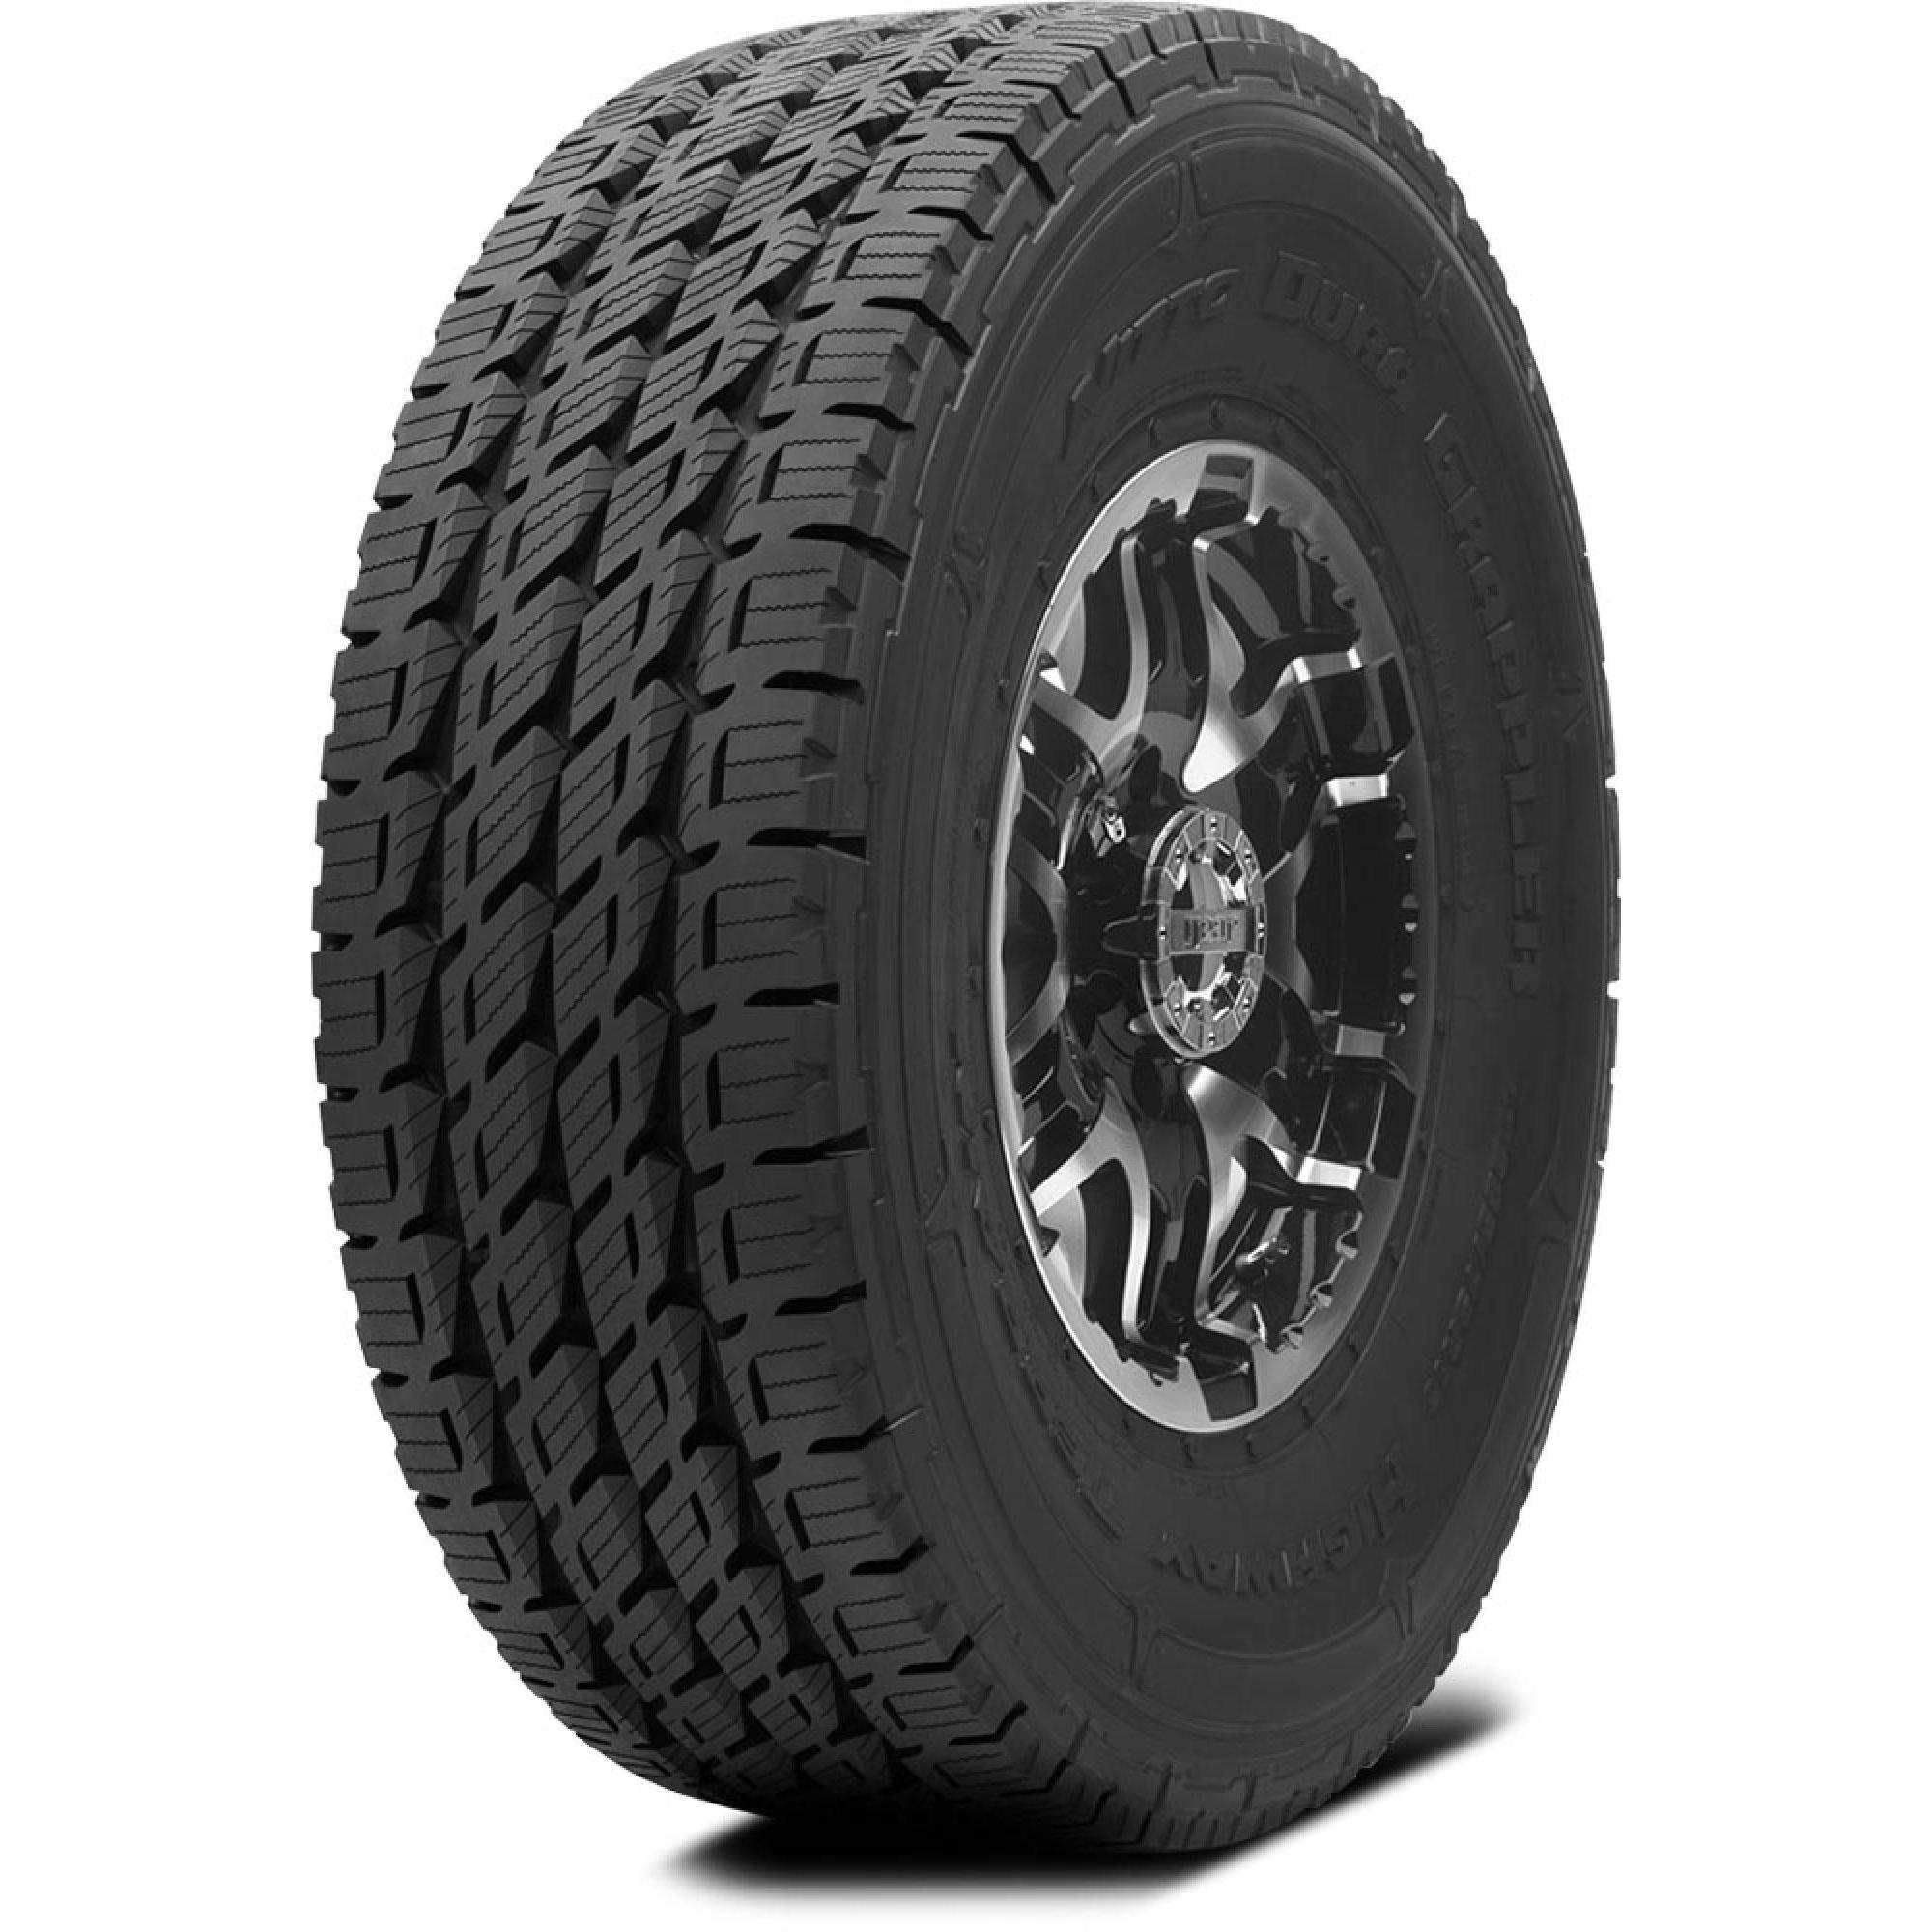 Nitto Dura Grappler >> Nitto Dura Grappler 275 55r20xl Tirebuyer